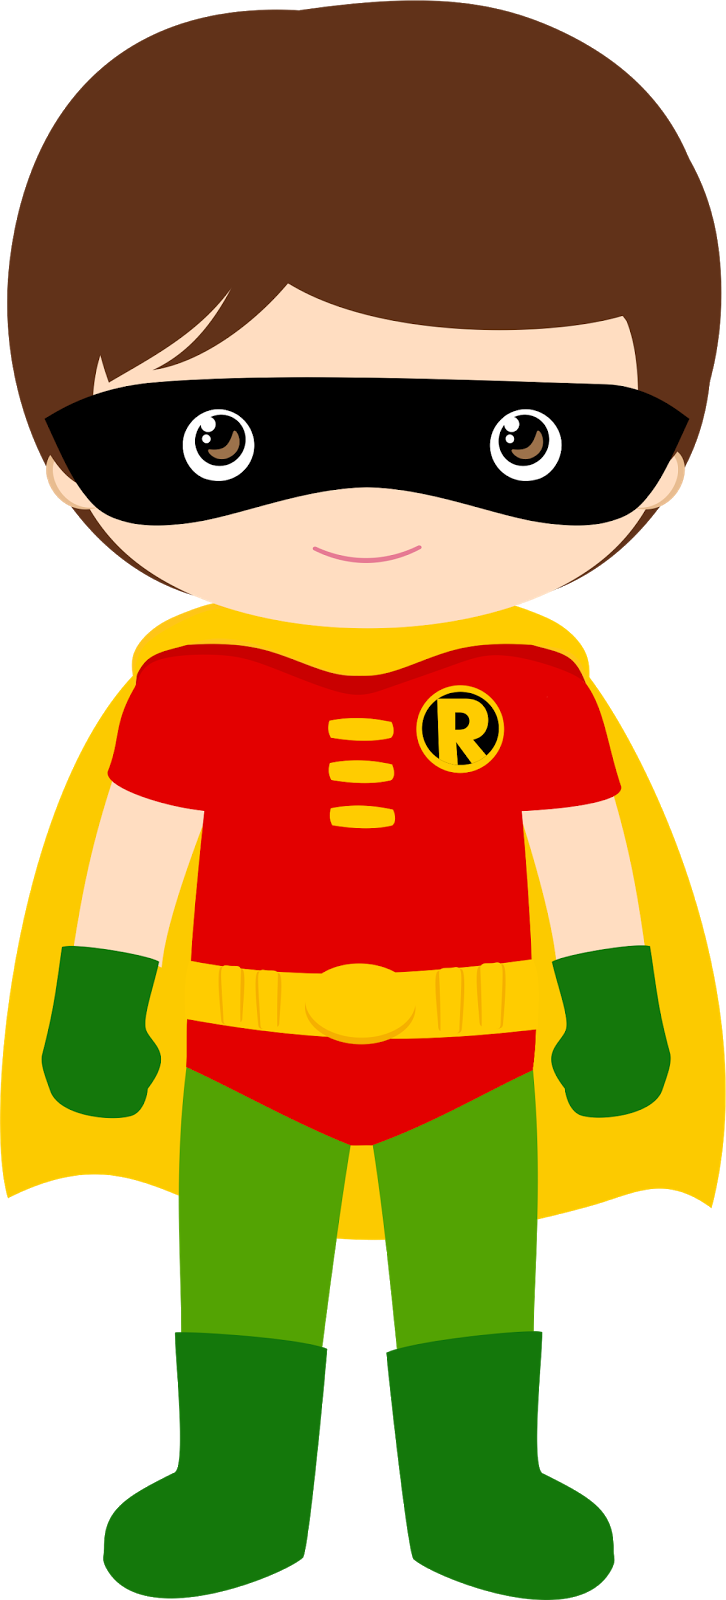 Super hero kids clipart png transparent stock Characters of Batman Kids Version Clip Art. | Super hero | Pinterest ... png transparent stock